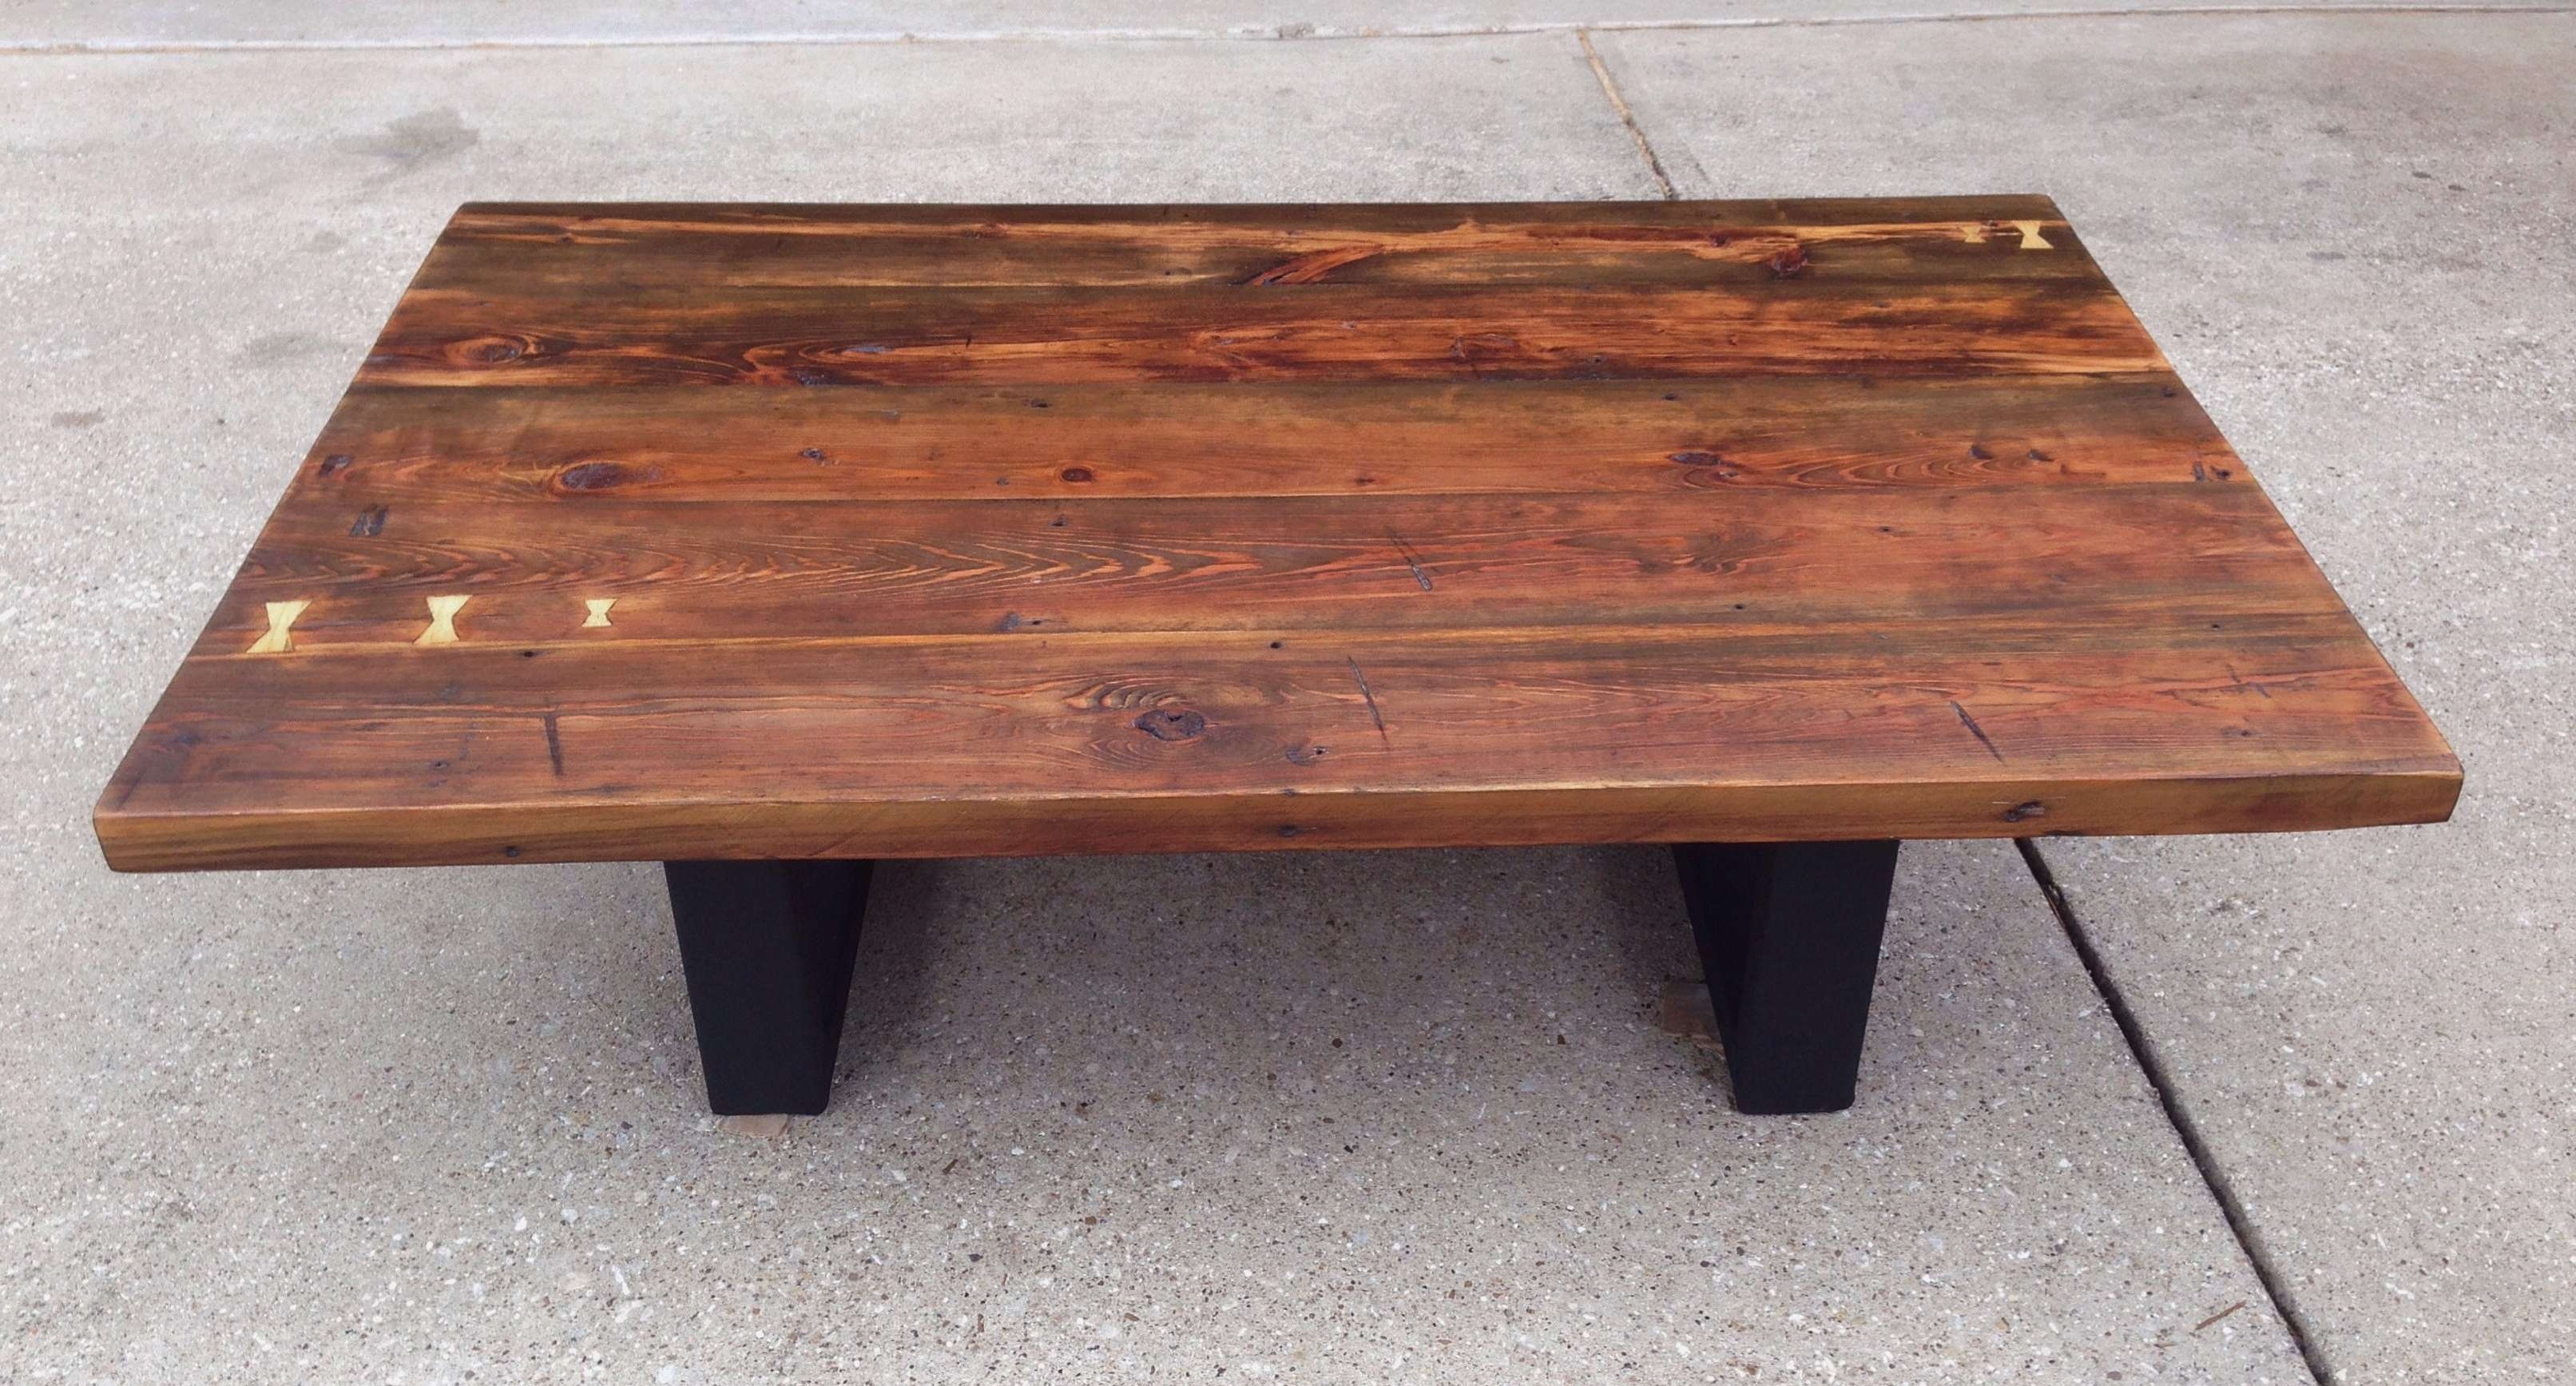 Newest Square Pine Coffee Tables For Coffee Table : Coffee Table Pine Square Excellent Photo Concept (Gallery 11 of 20)